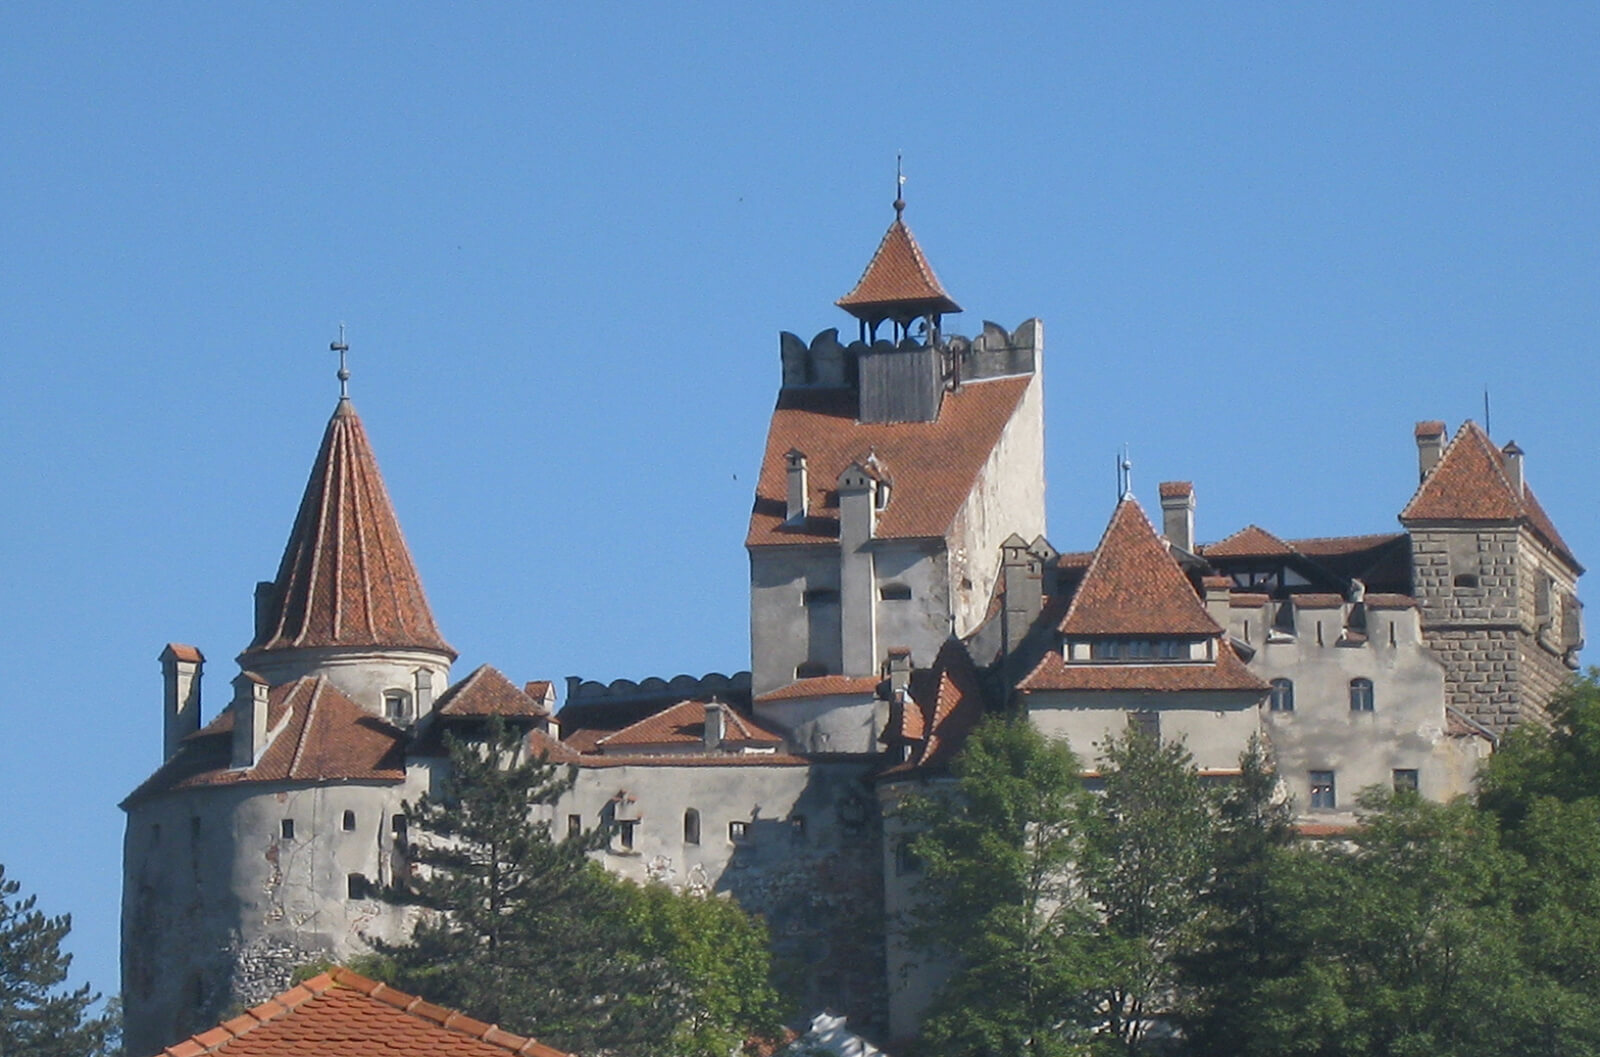 Bran Castle in Transylvania, aka Dracula's Castle, the most famous destination in all of Romania